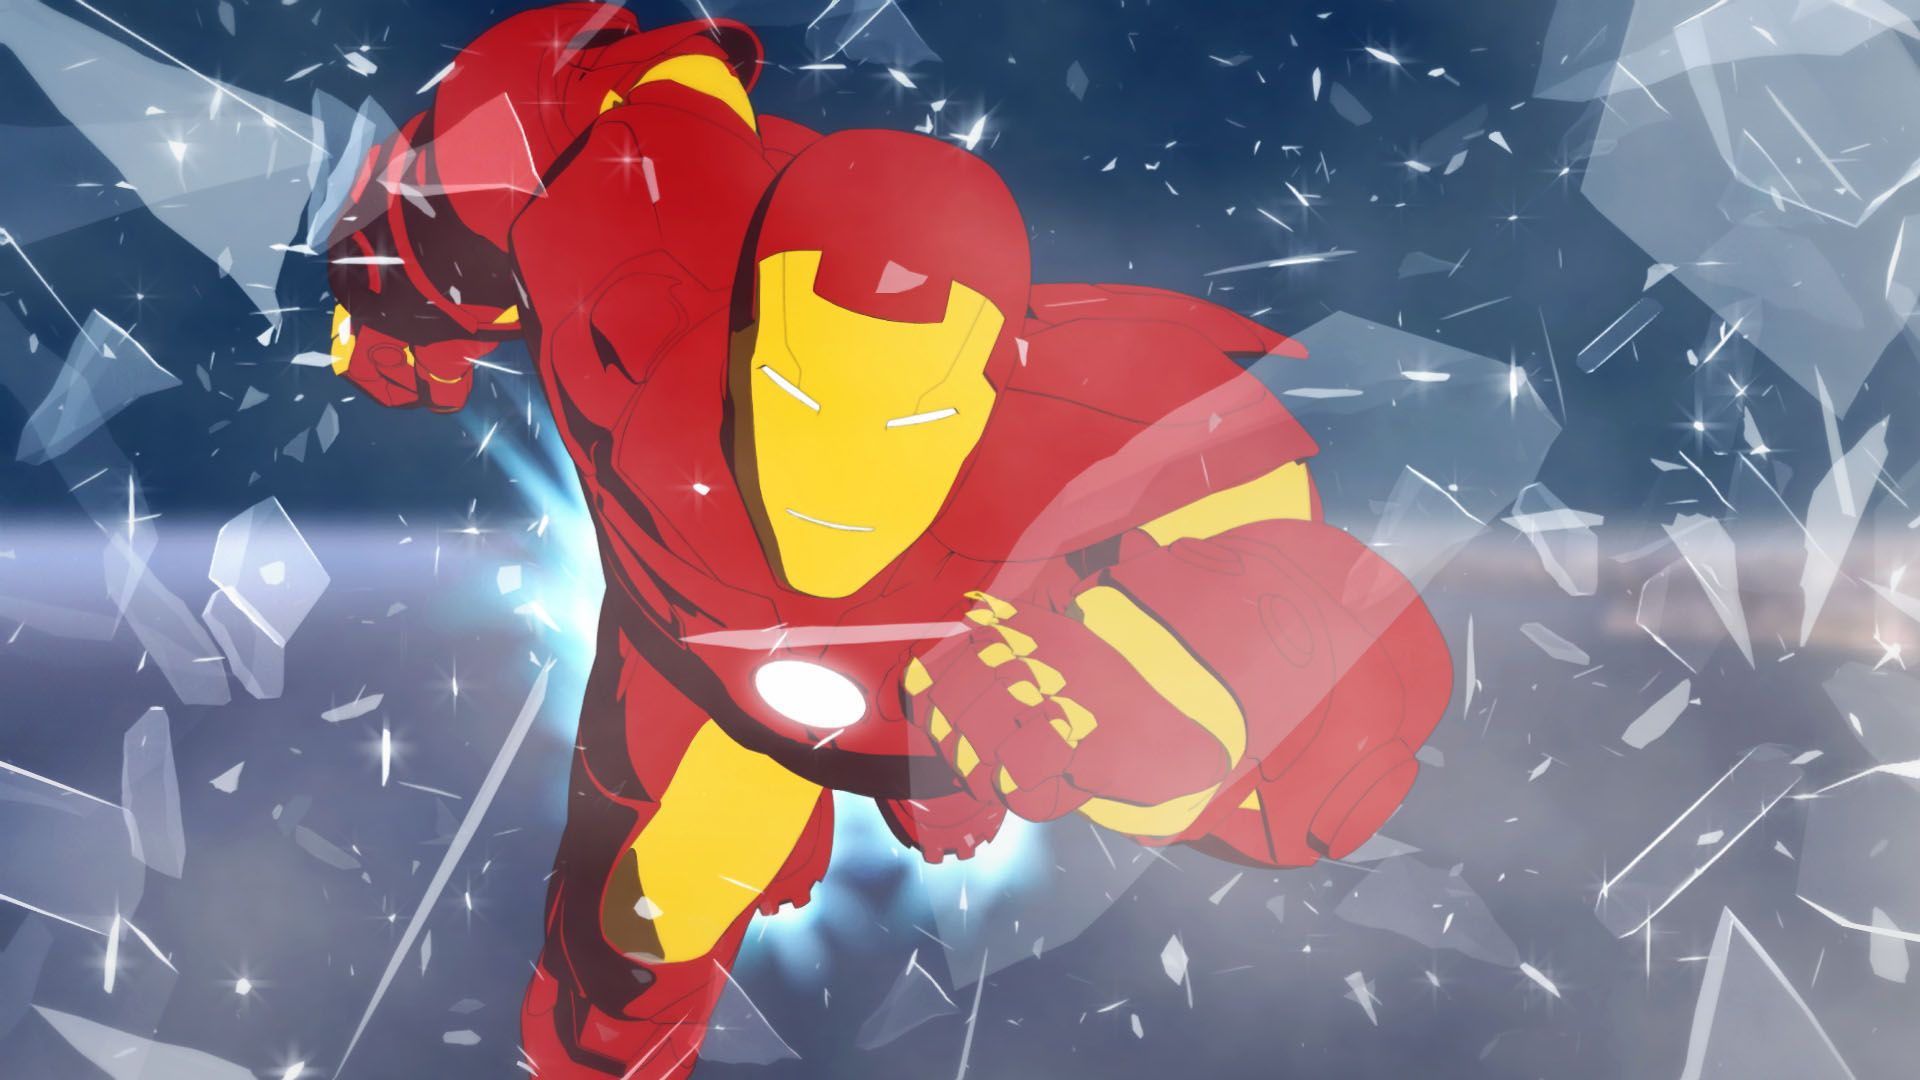 Best 50+ Iron Man Armored Adventures Wallpapers on HipWallpapers